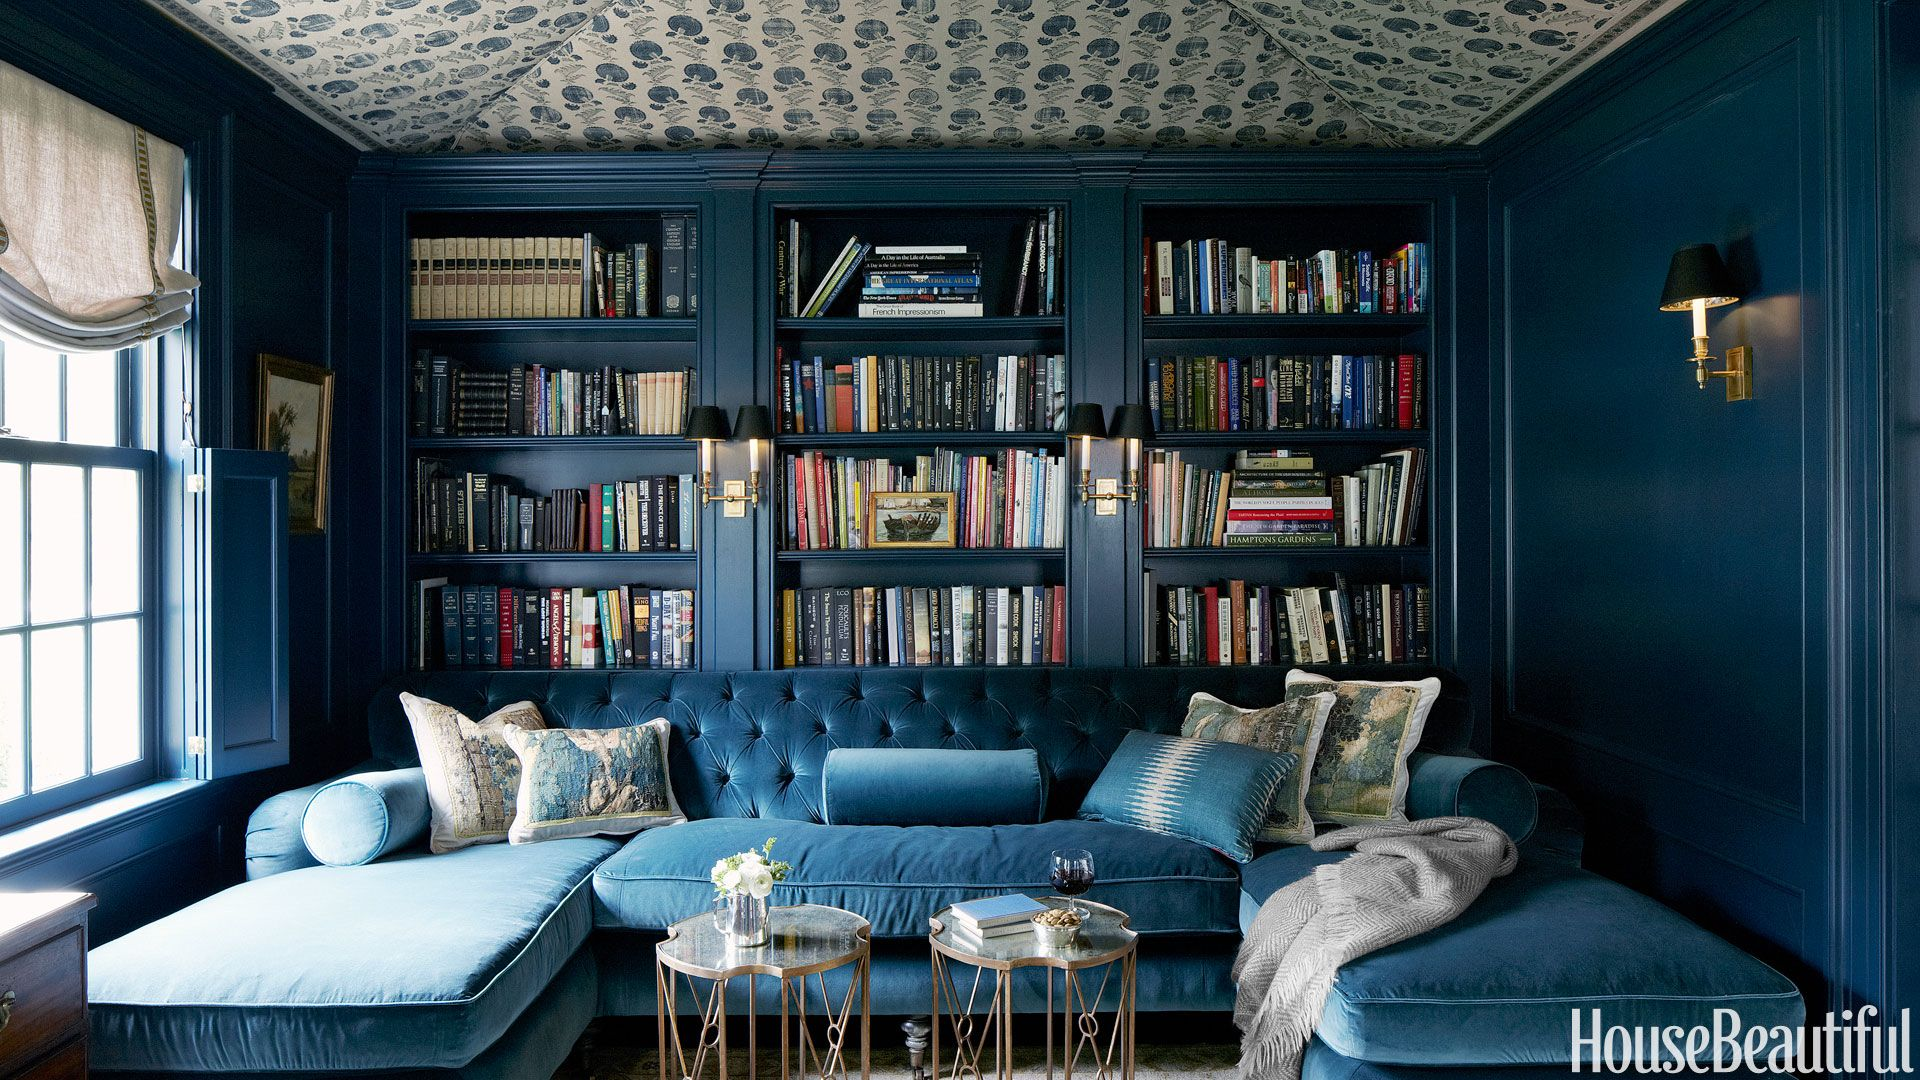 Home Library Design Stunning Home Library Design Ideas  Pictures Of Home Library Decor